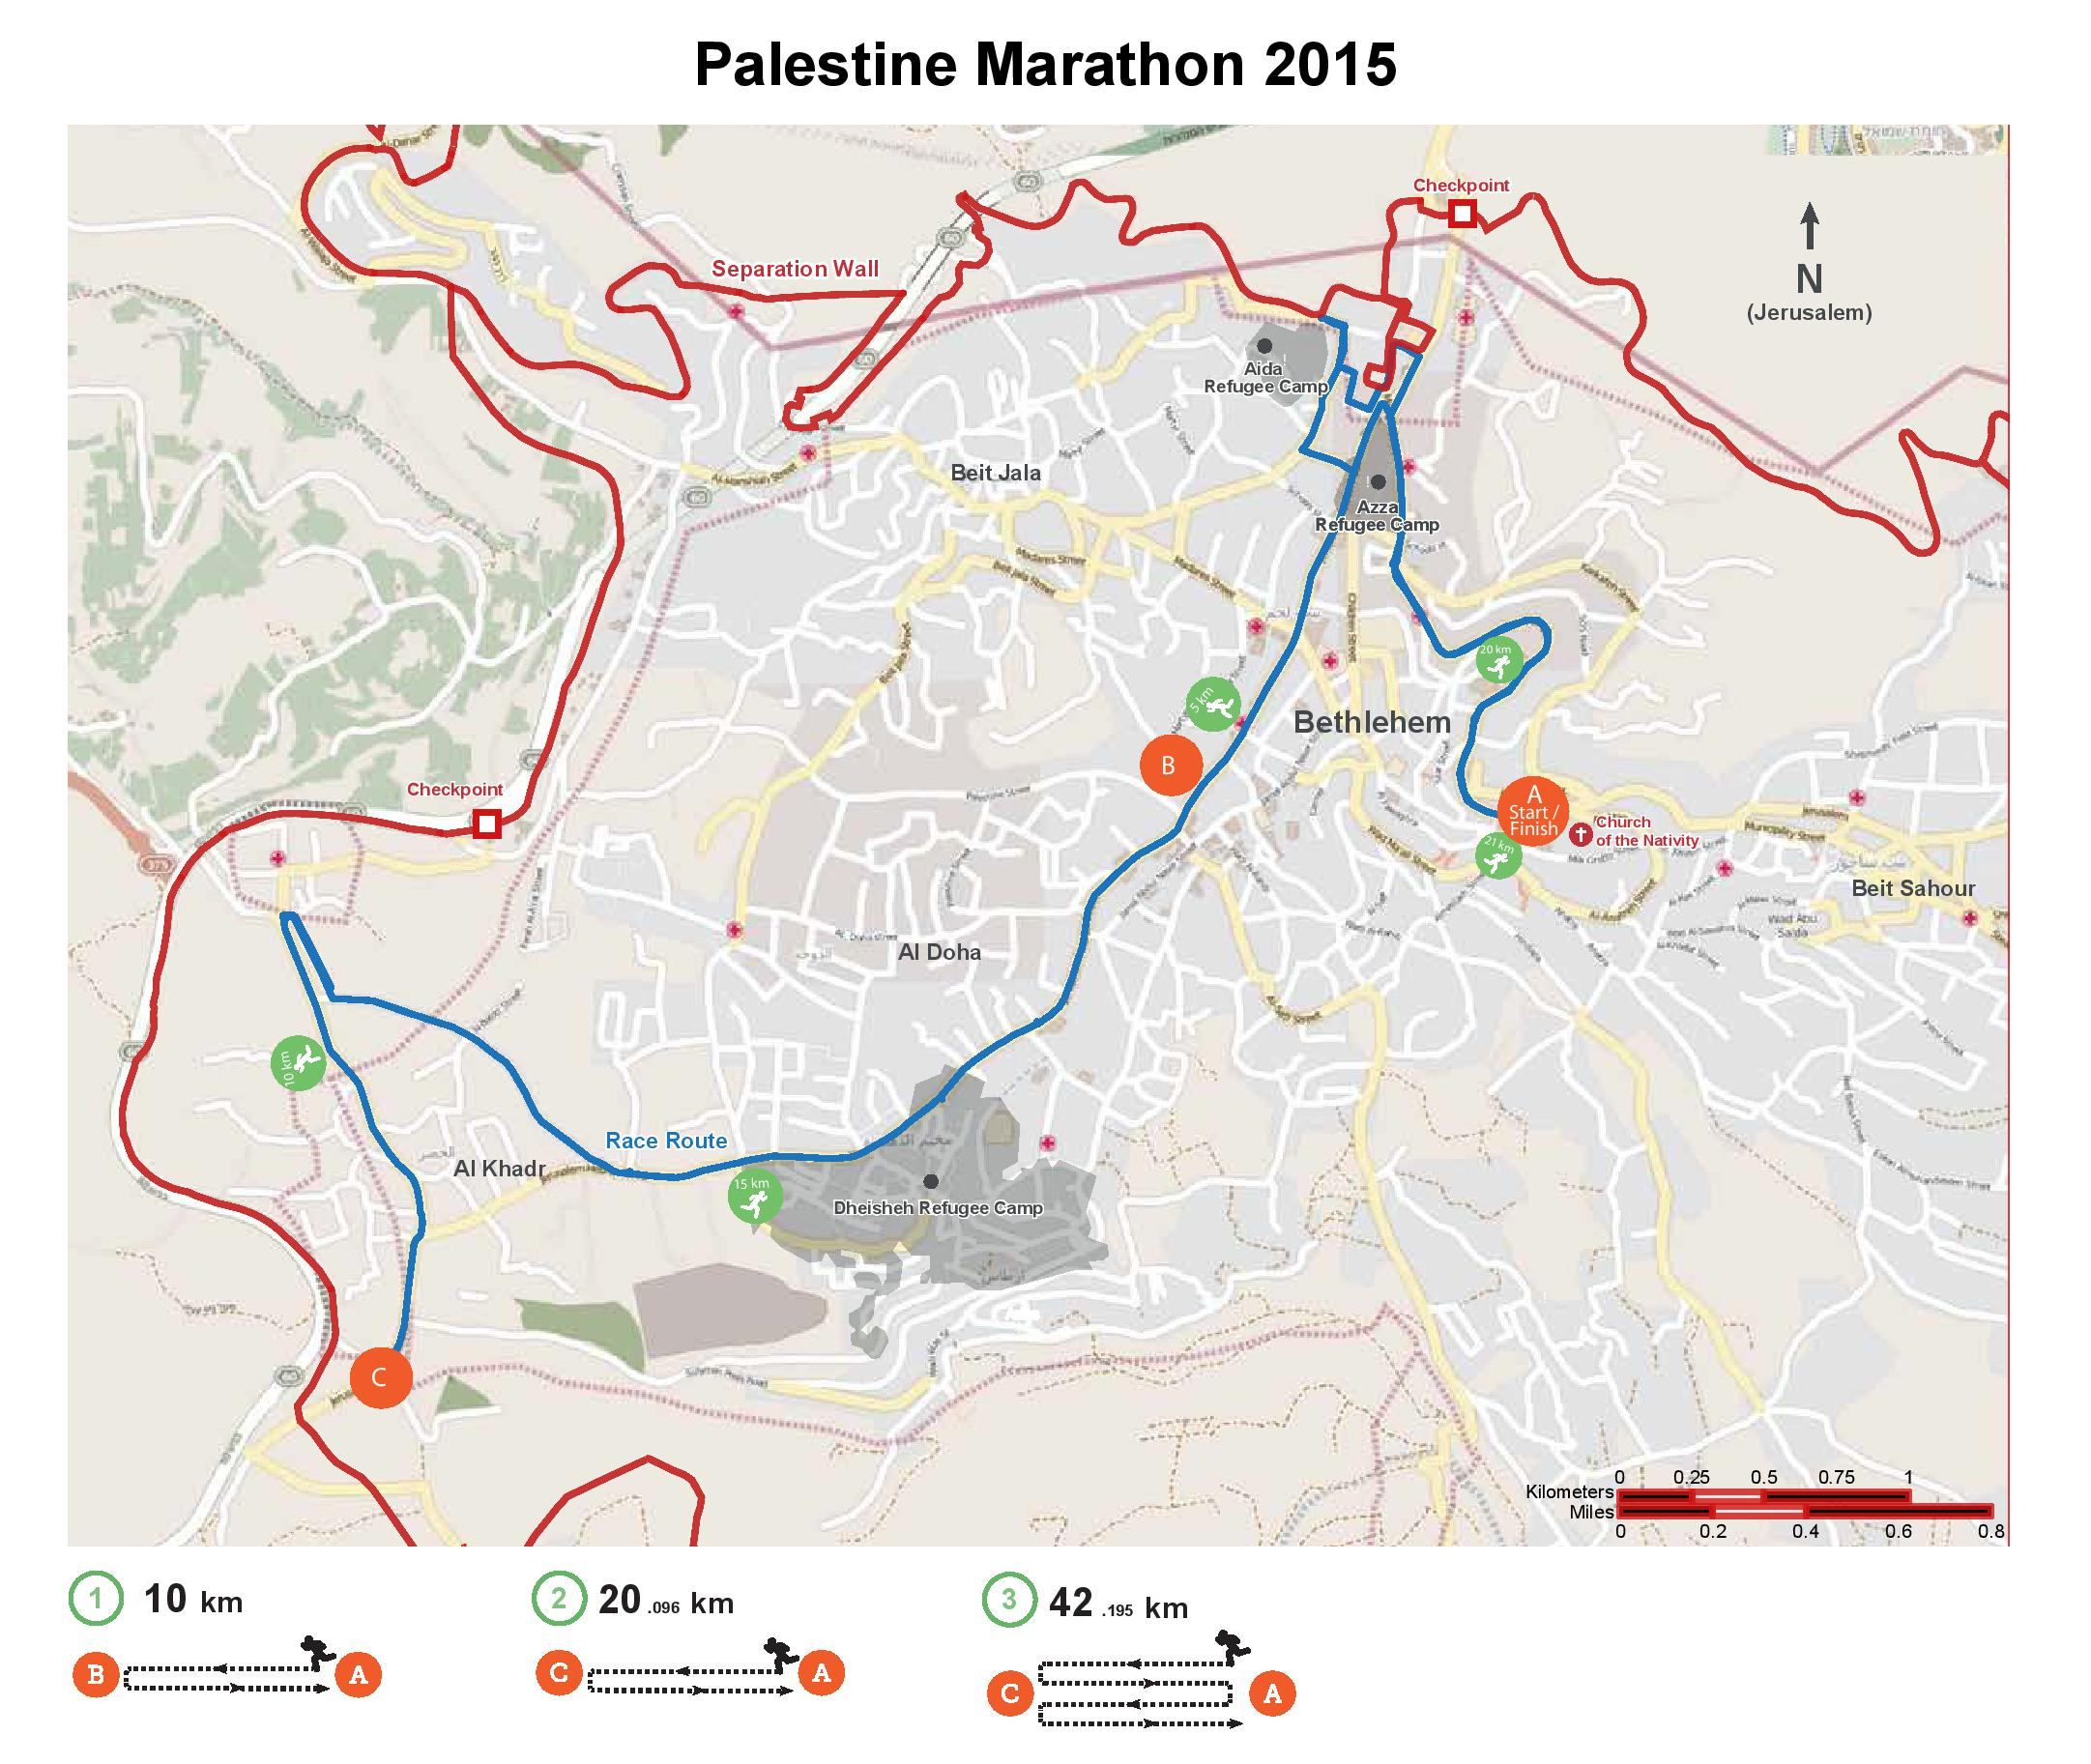 A map of the Ramallah marathon